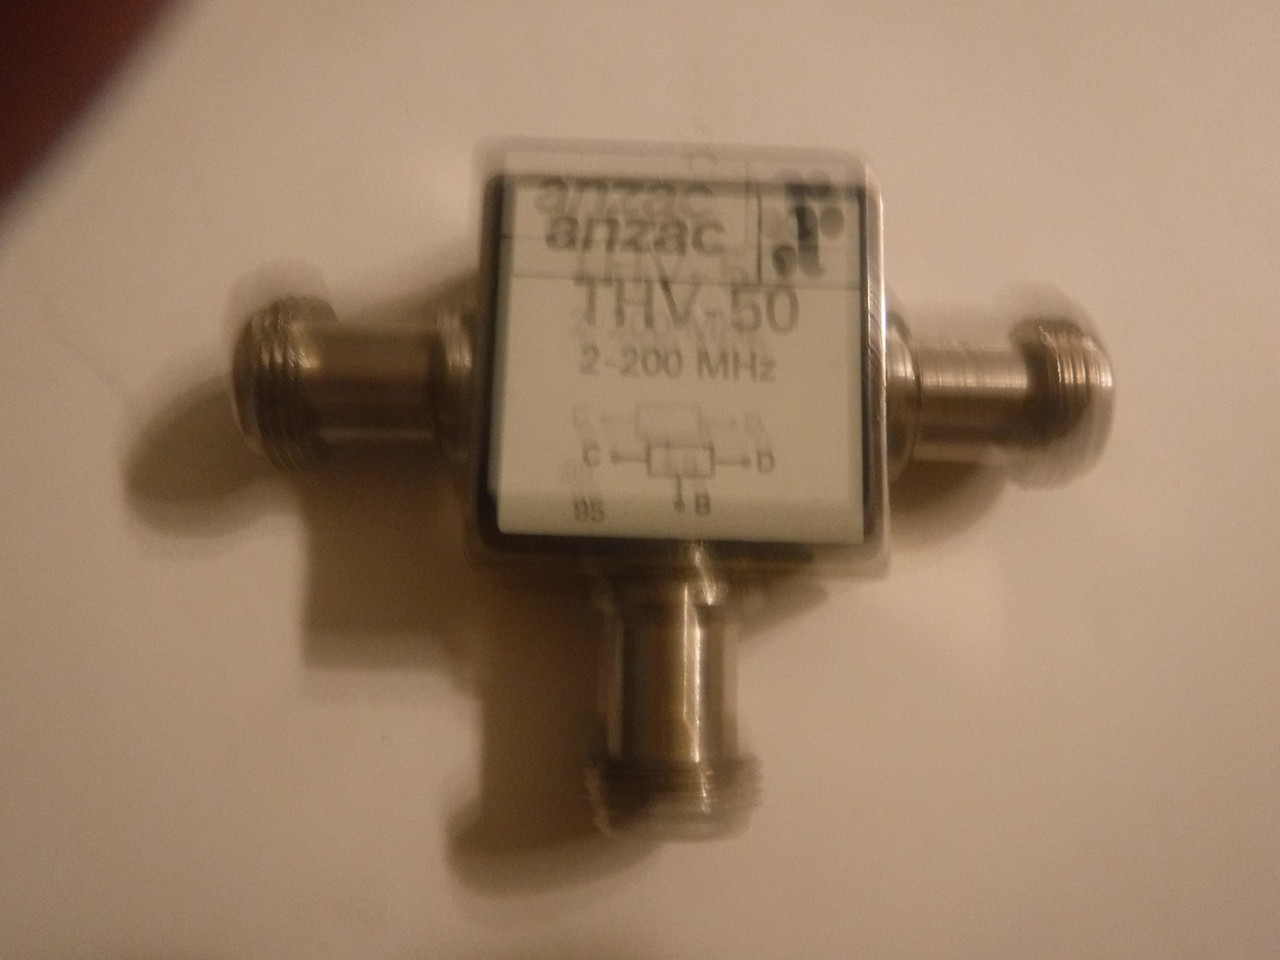 ANZAC THV 50 Power Divider N Type 2 200MHz